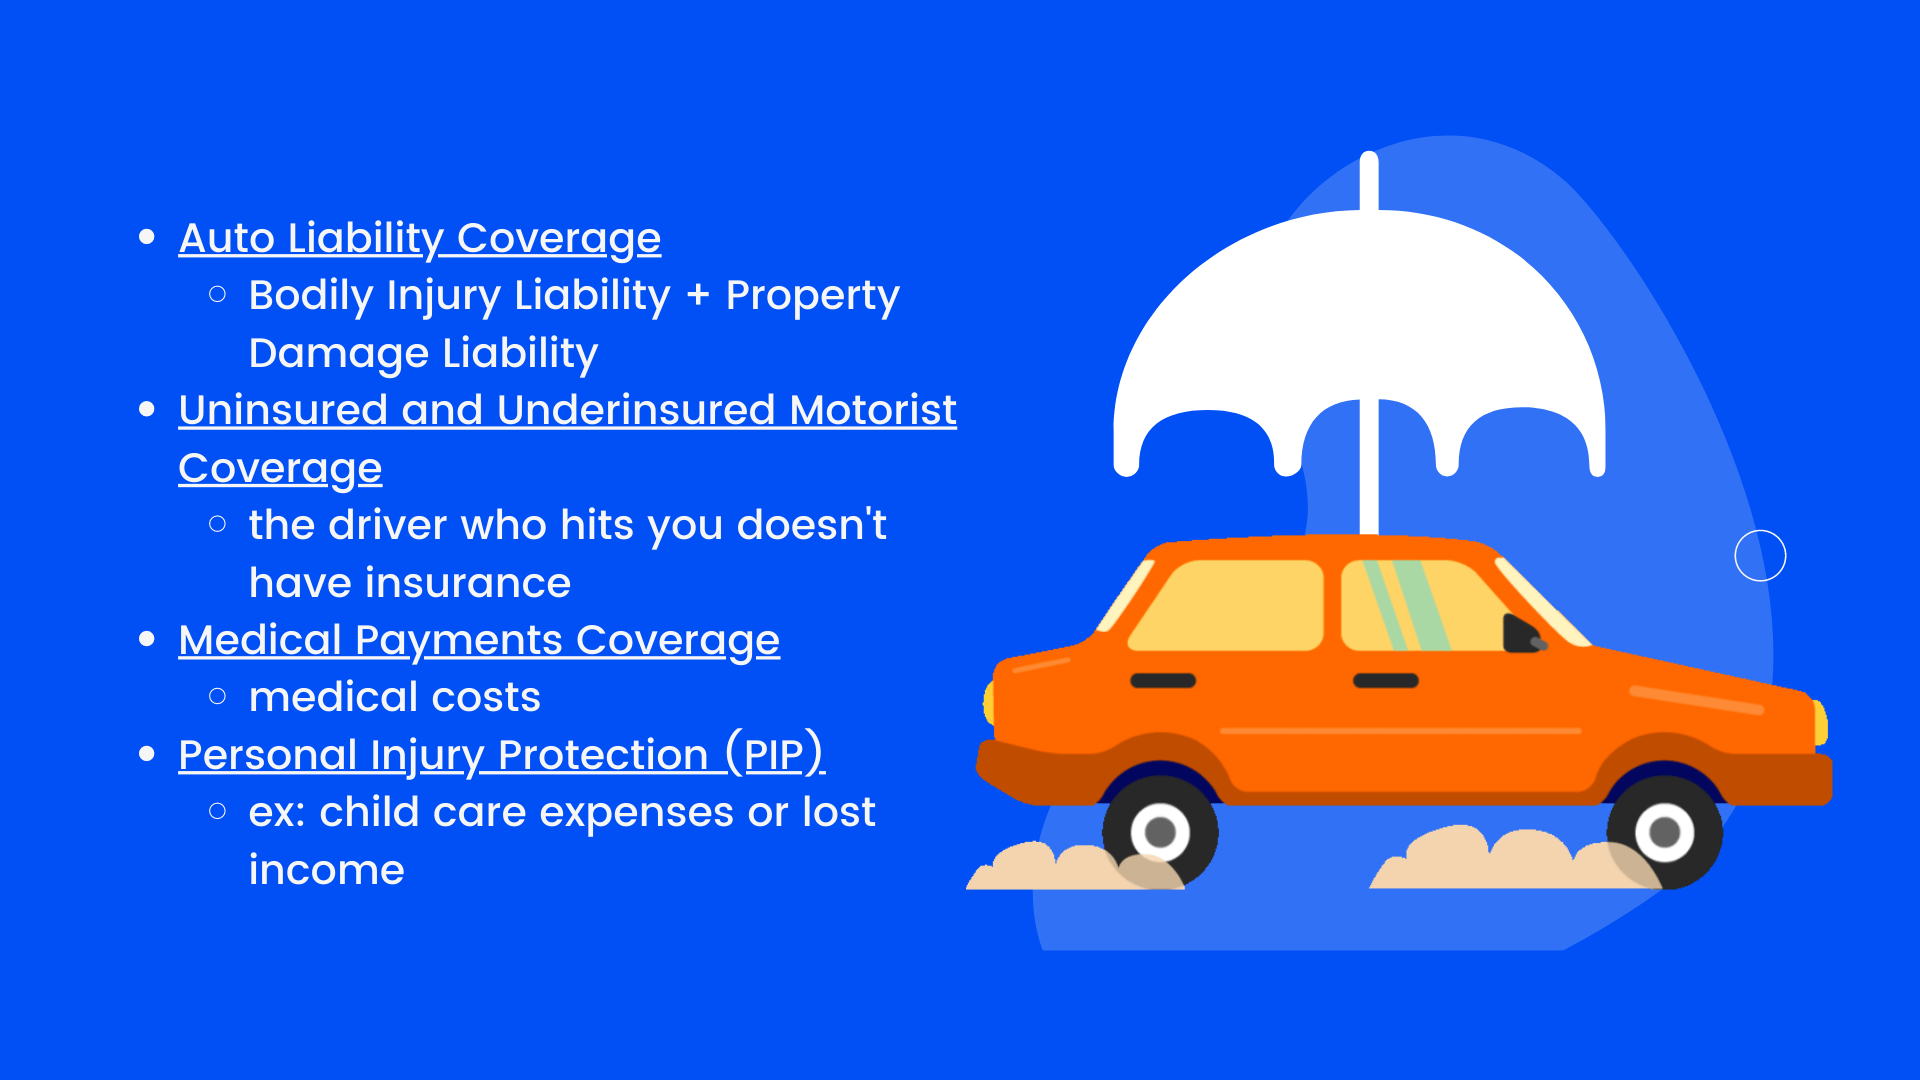 Auto Liability Coverage, Uninsured and Underinsured Motorist Coverage, Medical Payments Coverage, and Personal Injury Protection (PIP)